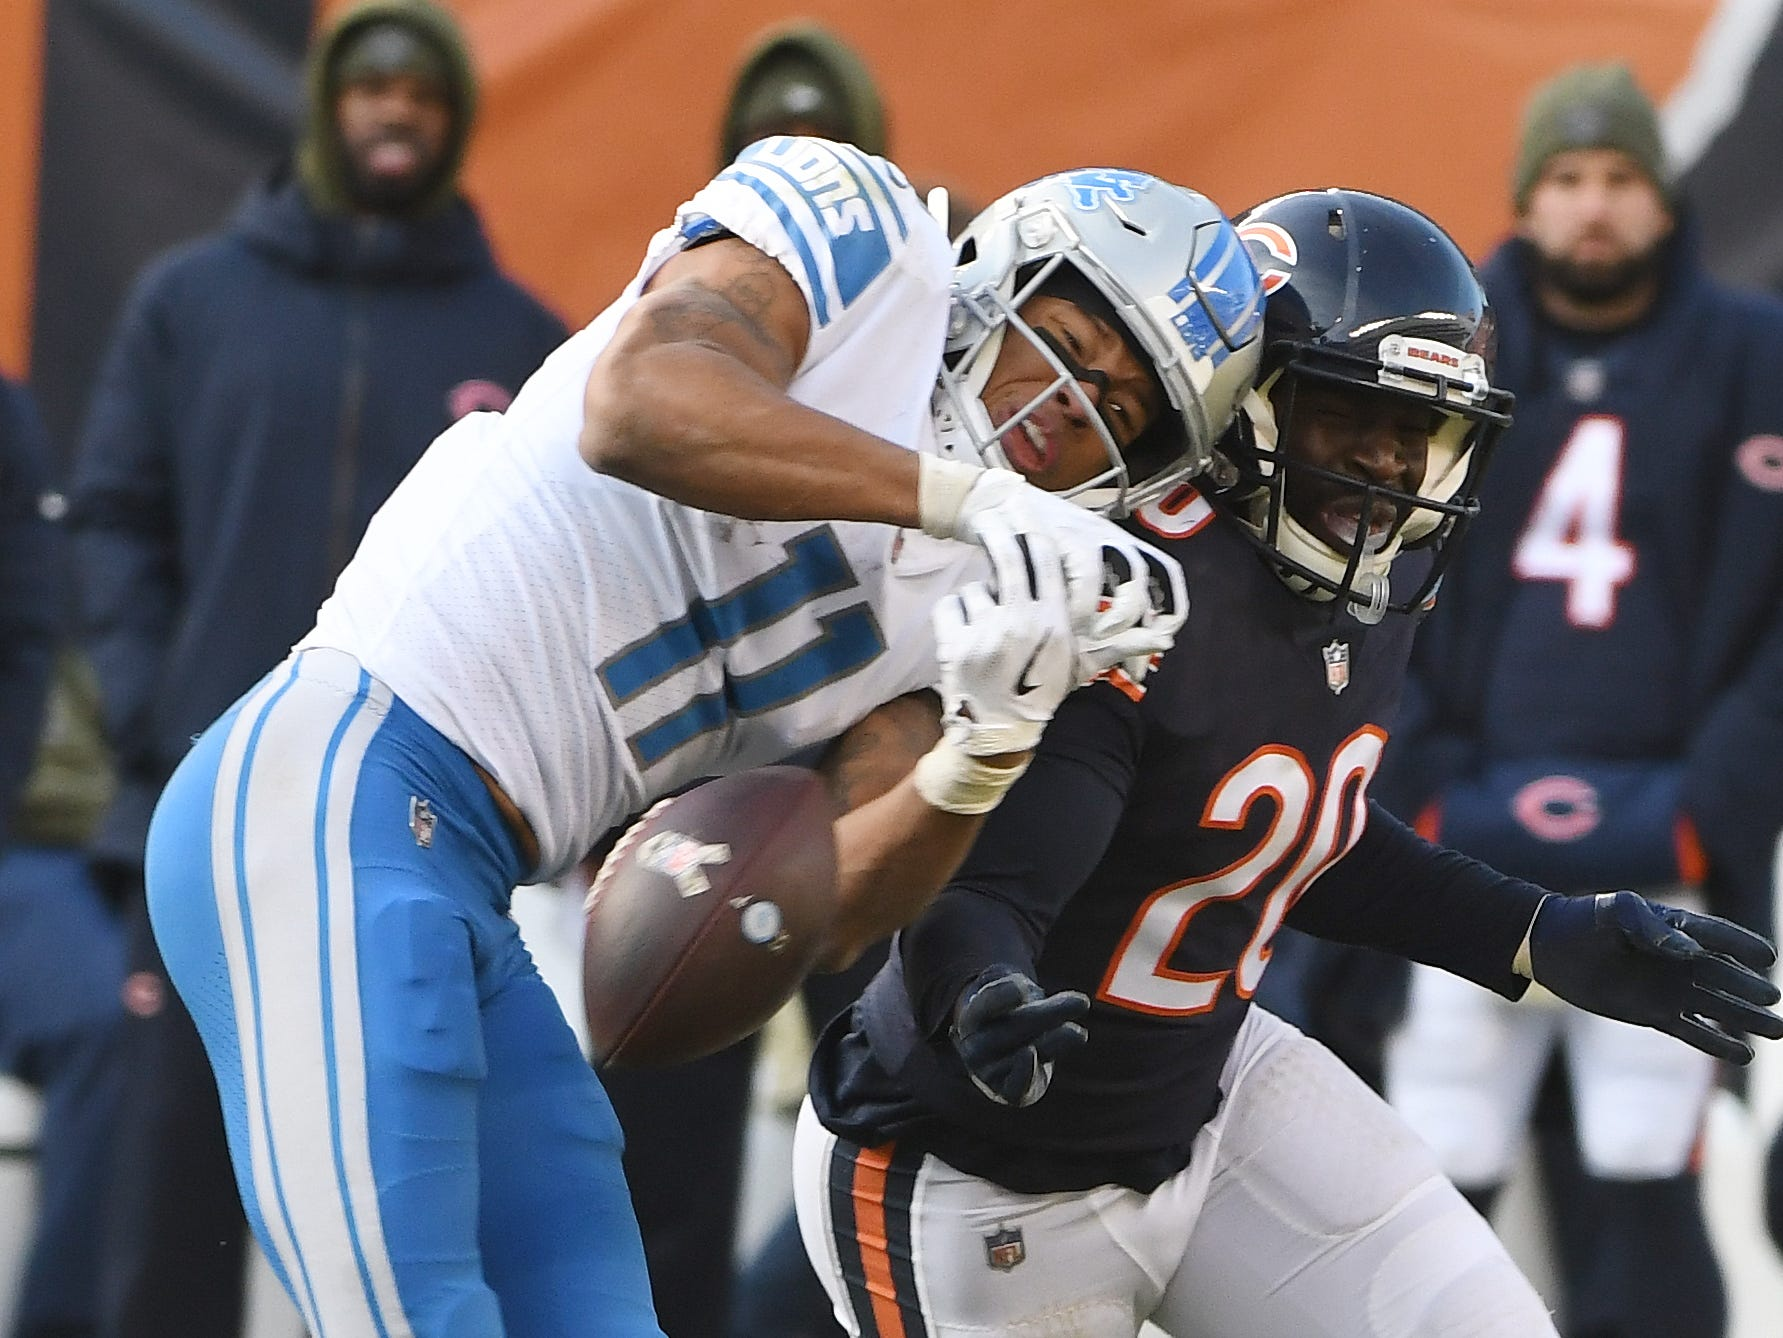 Lions wide receiver Marvin Jones Jr. can't pull in a reception with Bears' Prince Amukamara defending in the third quarter.